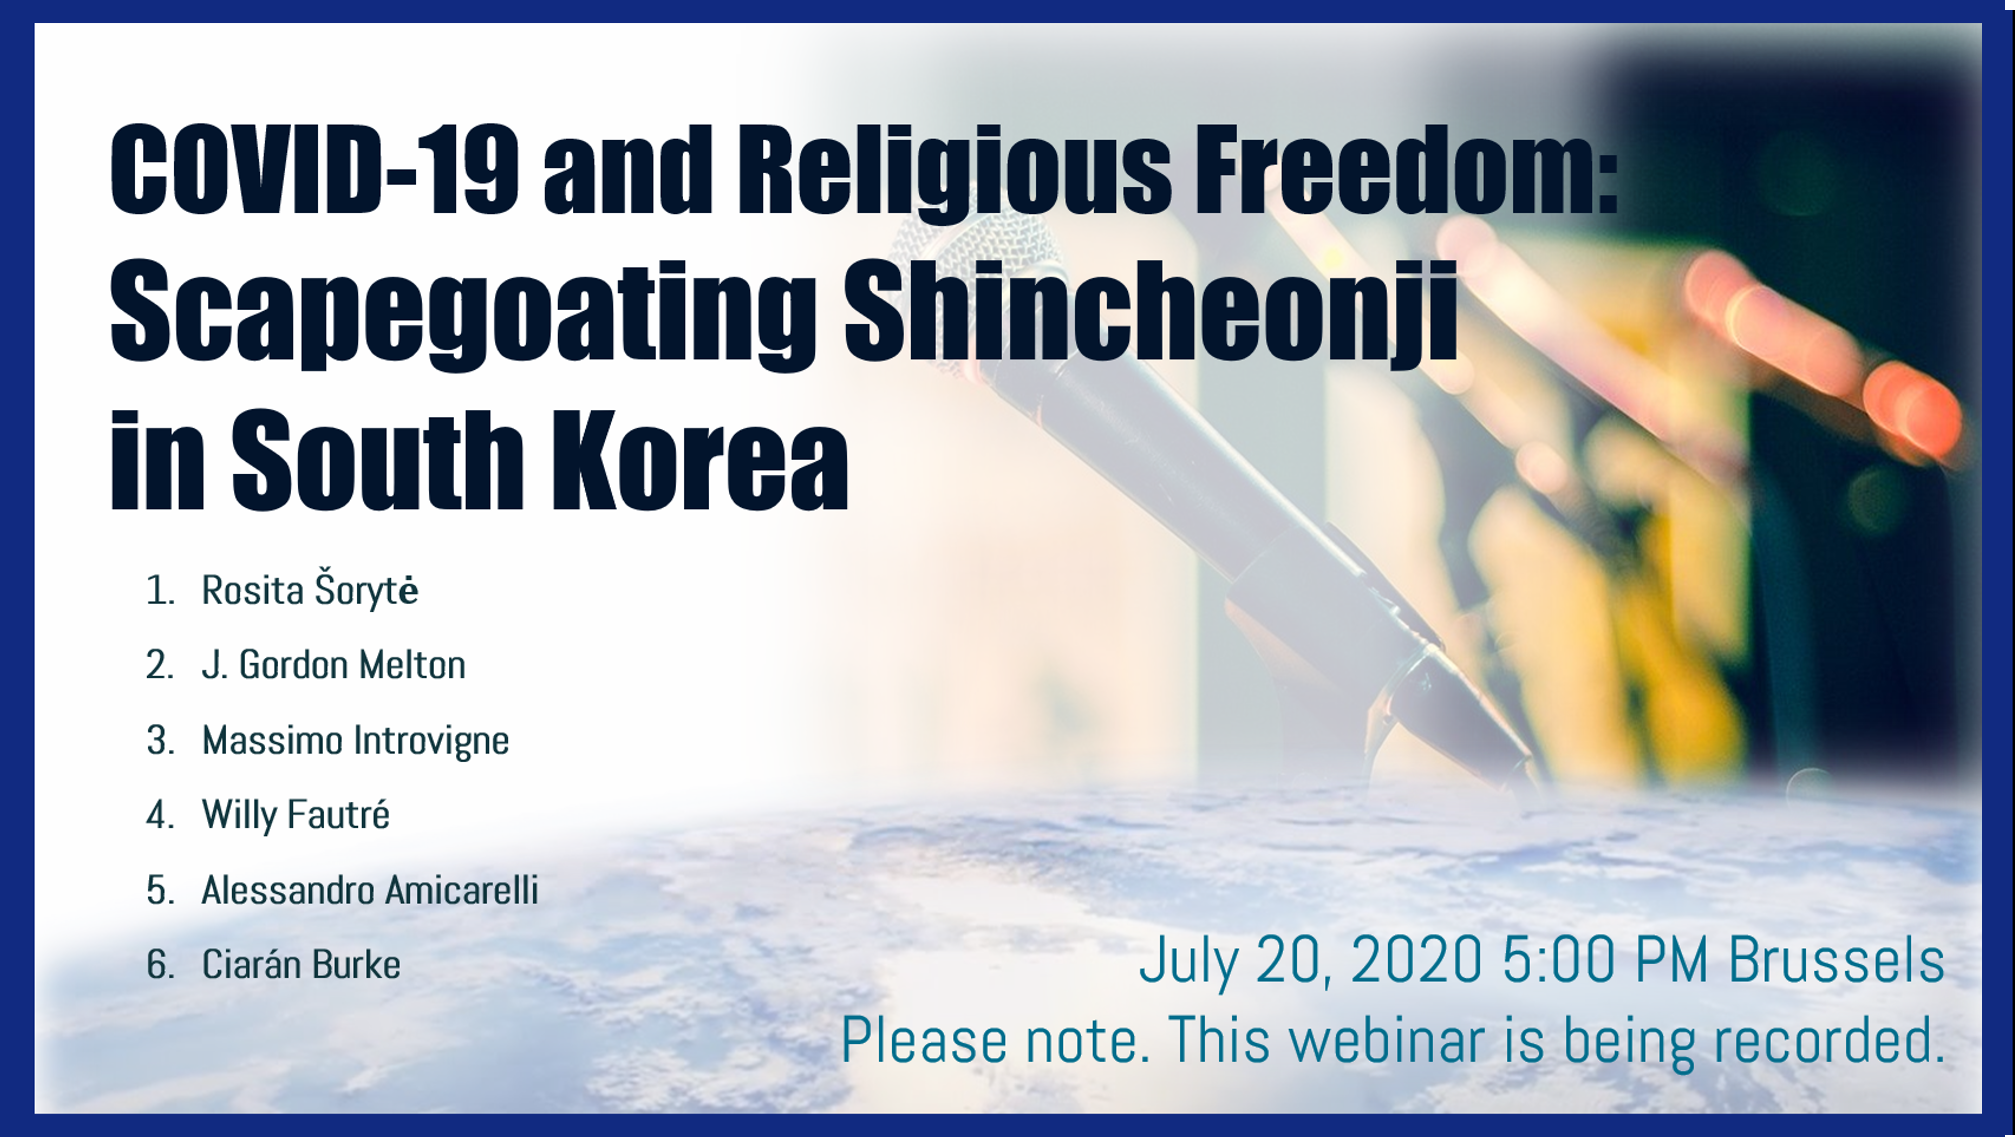 Webinar on COVID19 and Religious Freedom Scapegoating Shincheonji in South Korea